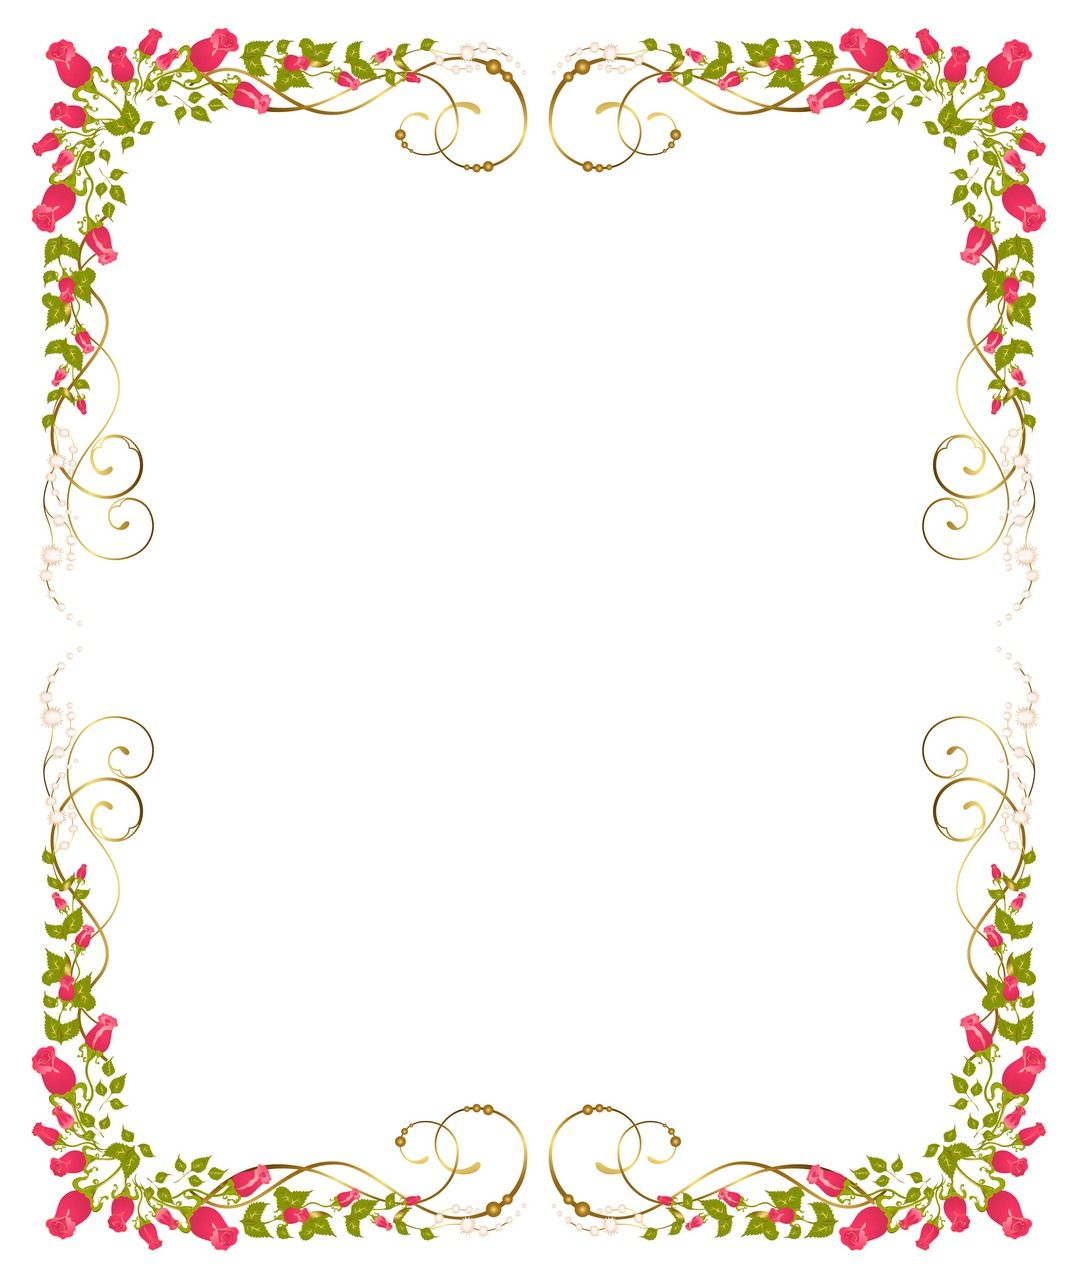 flower background frame 09 vector eps free download logo icons brand emblems [ 1076 x 1280 Pixel ]